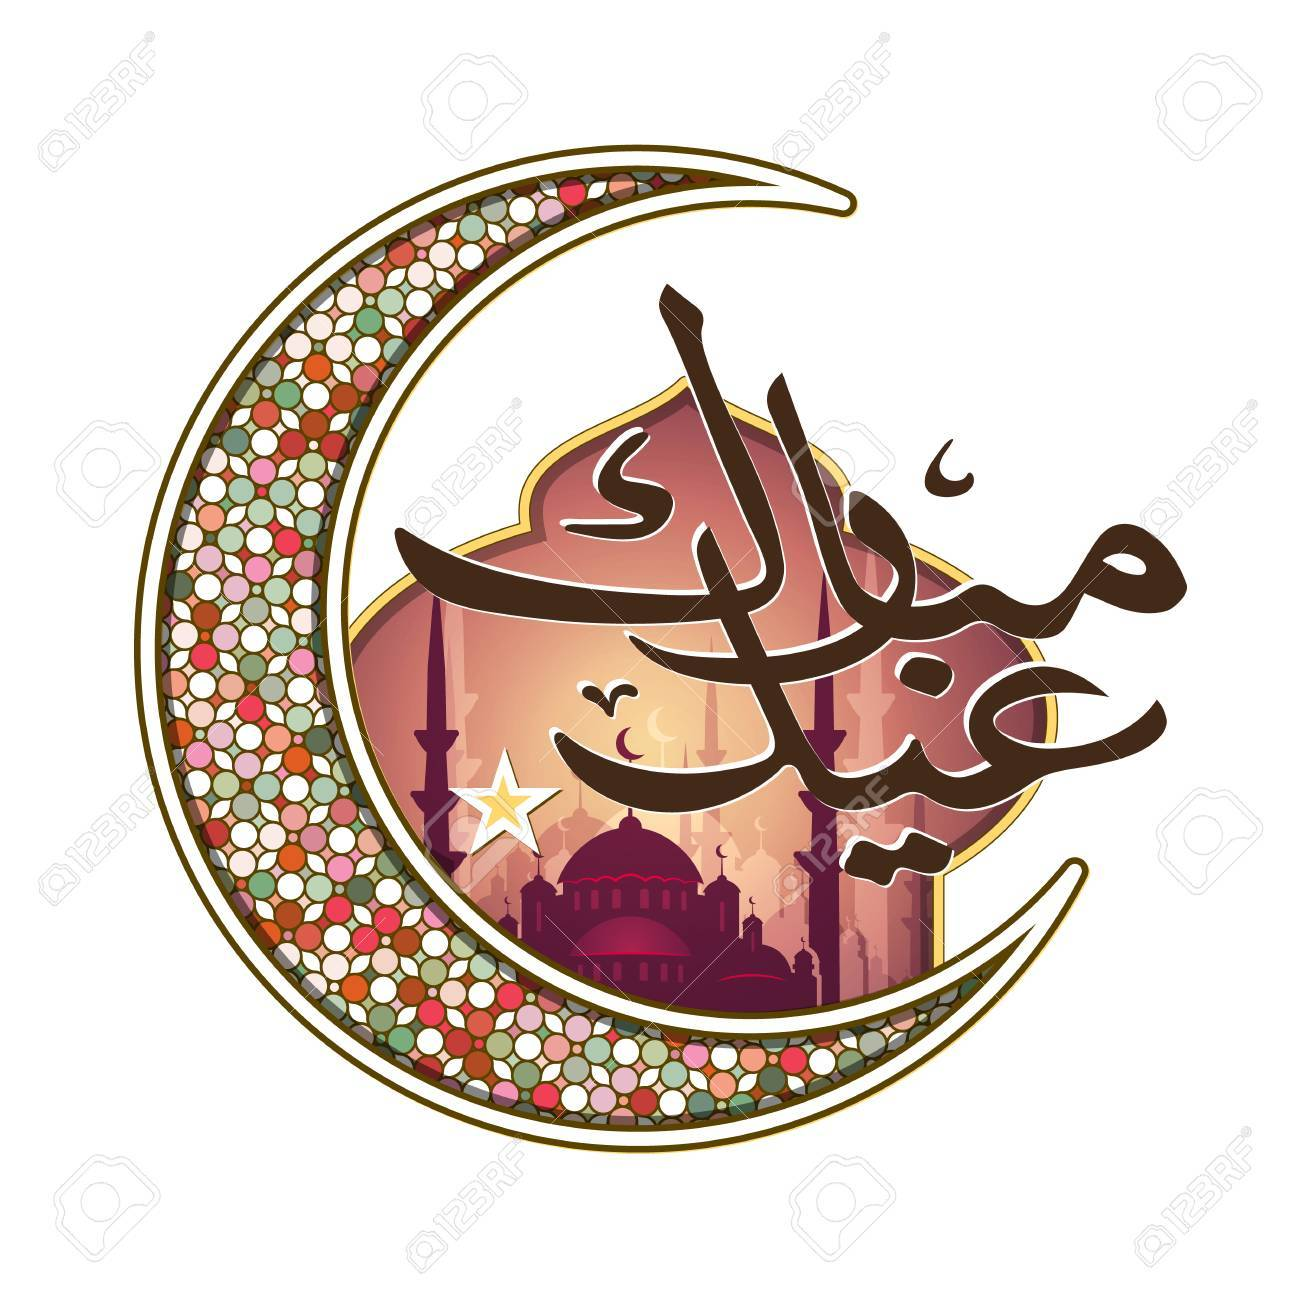 Best Happy Eid Al-Fitr Feast - 59282136-calligraphy-of-arabic-text-eid-al-fitr-feast-of-breaking-the-fast-holiday-greeting-card-in-retro-sty  Photograph_197786 .jpg